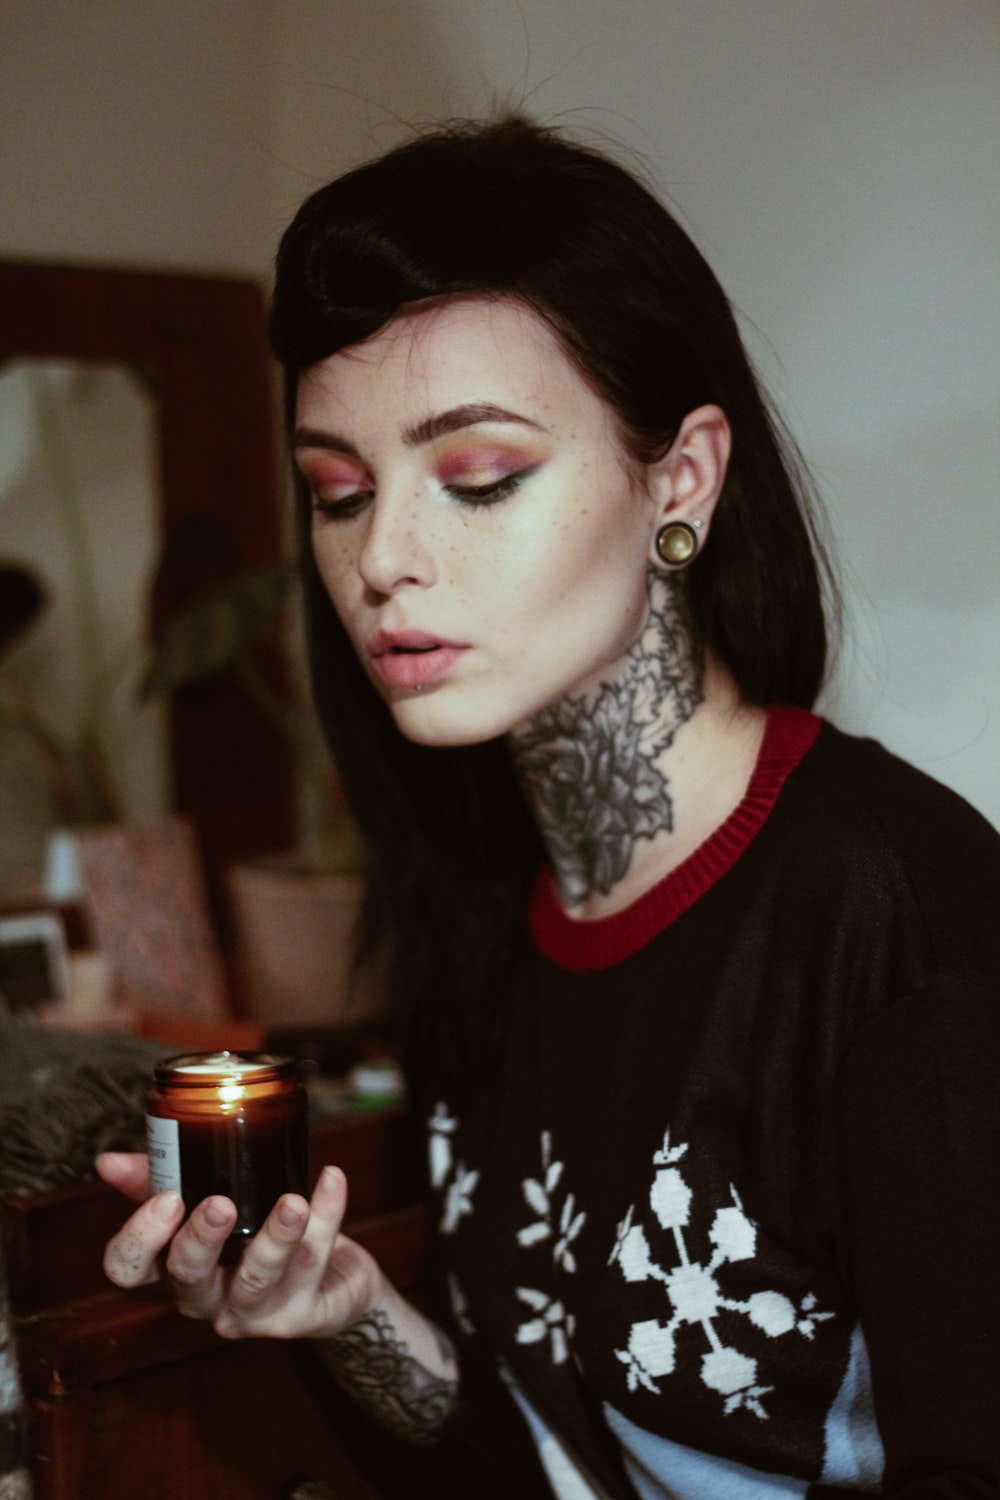 woman wearing black, white, and red floral crew-neck t-shirt holding lighted tealight candle